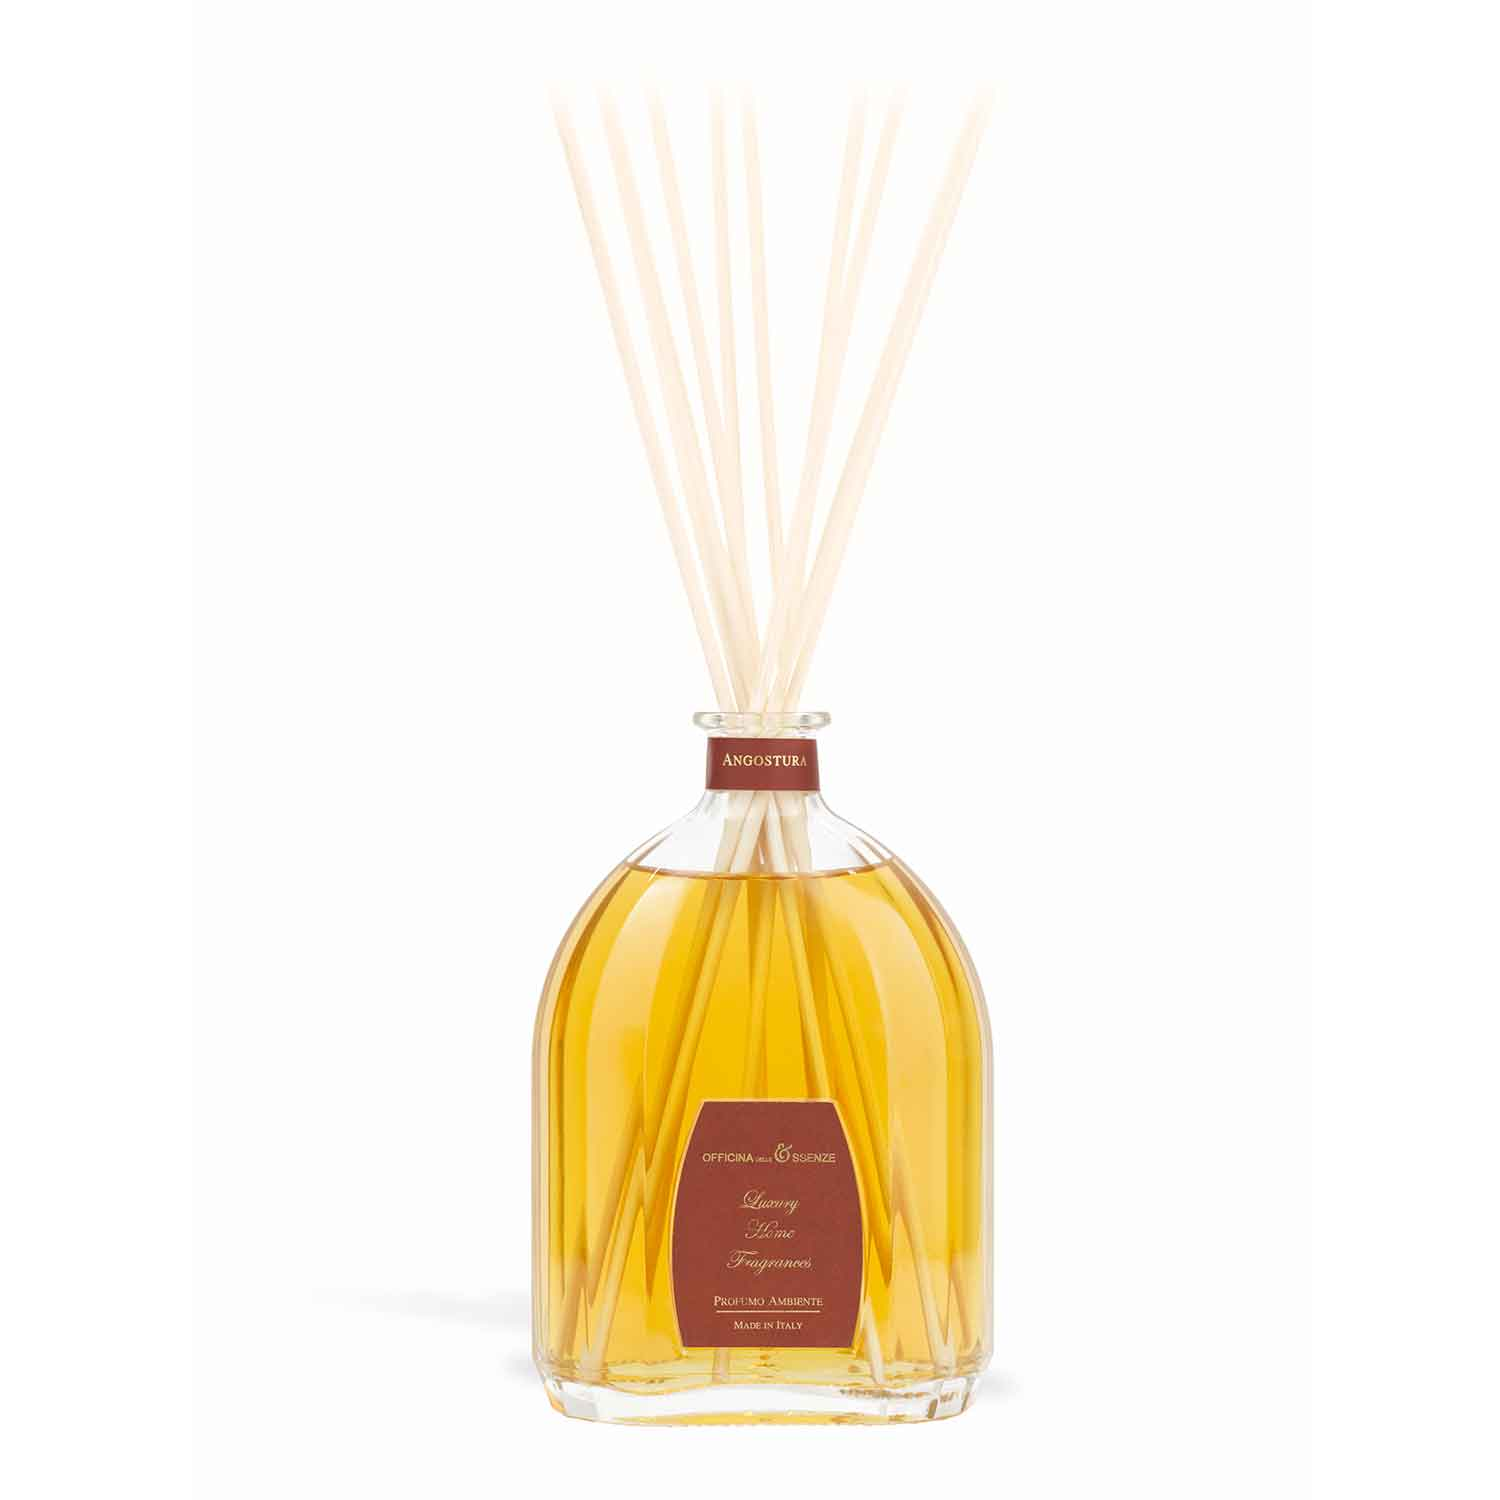 Angostura - Home fragrance diffuser with essential oils, 500 ml